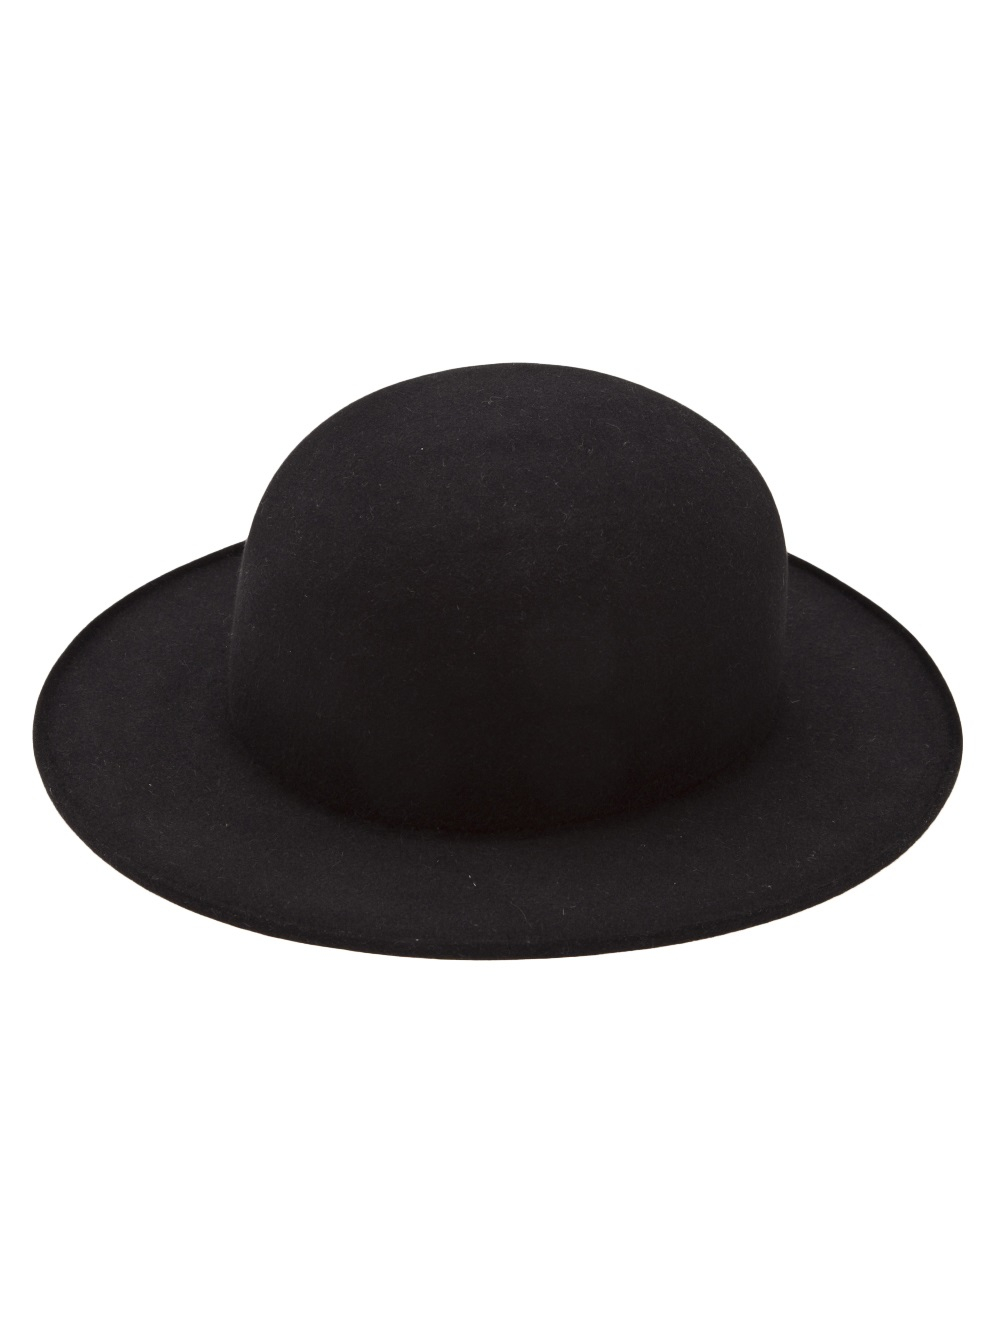 Rubber Rings For Men >> Gladys tamez millinery Round Bill Custom Hat in Black for Men | Lyst